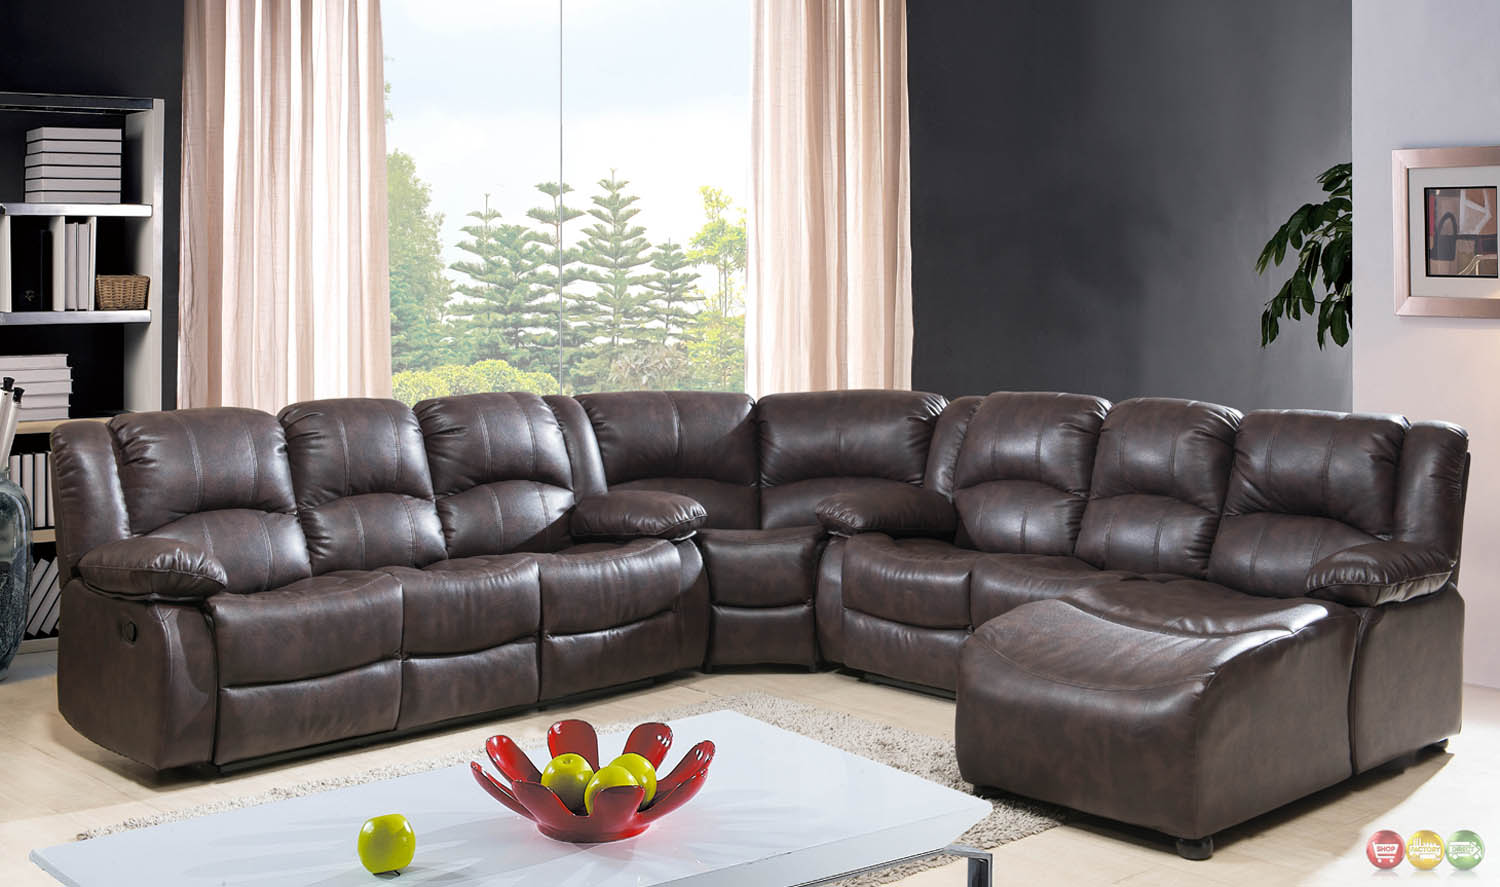 Brown bonded leather reclining sectional w chaise for Bonded leather sectional with chaise